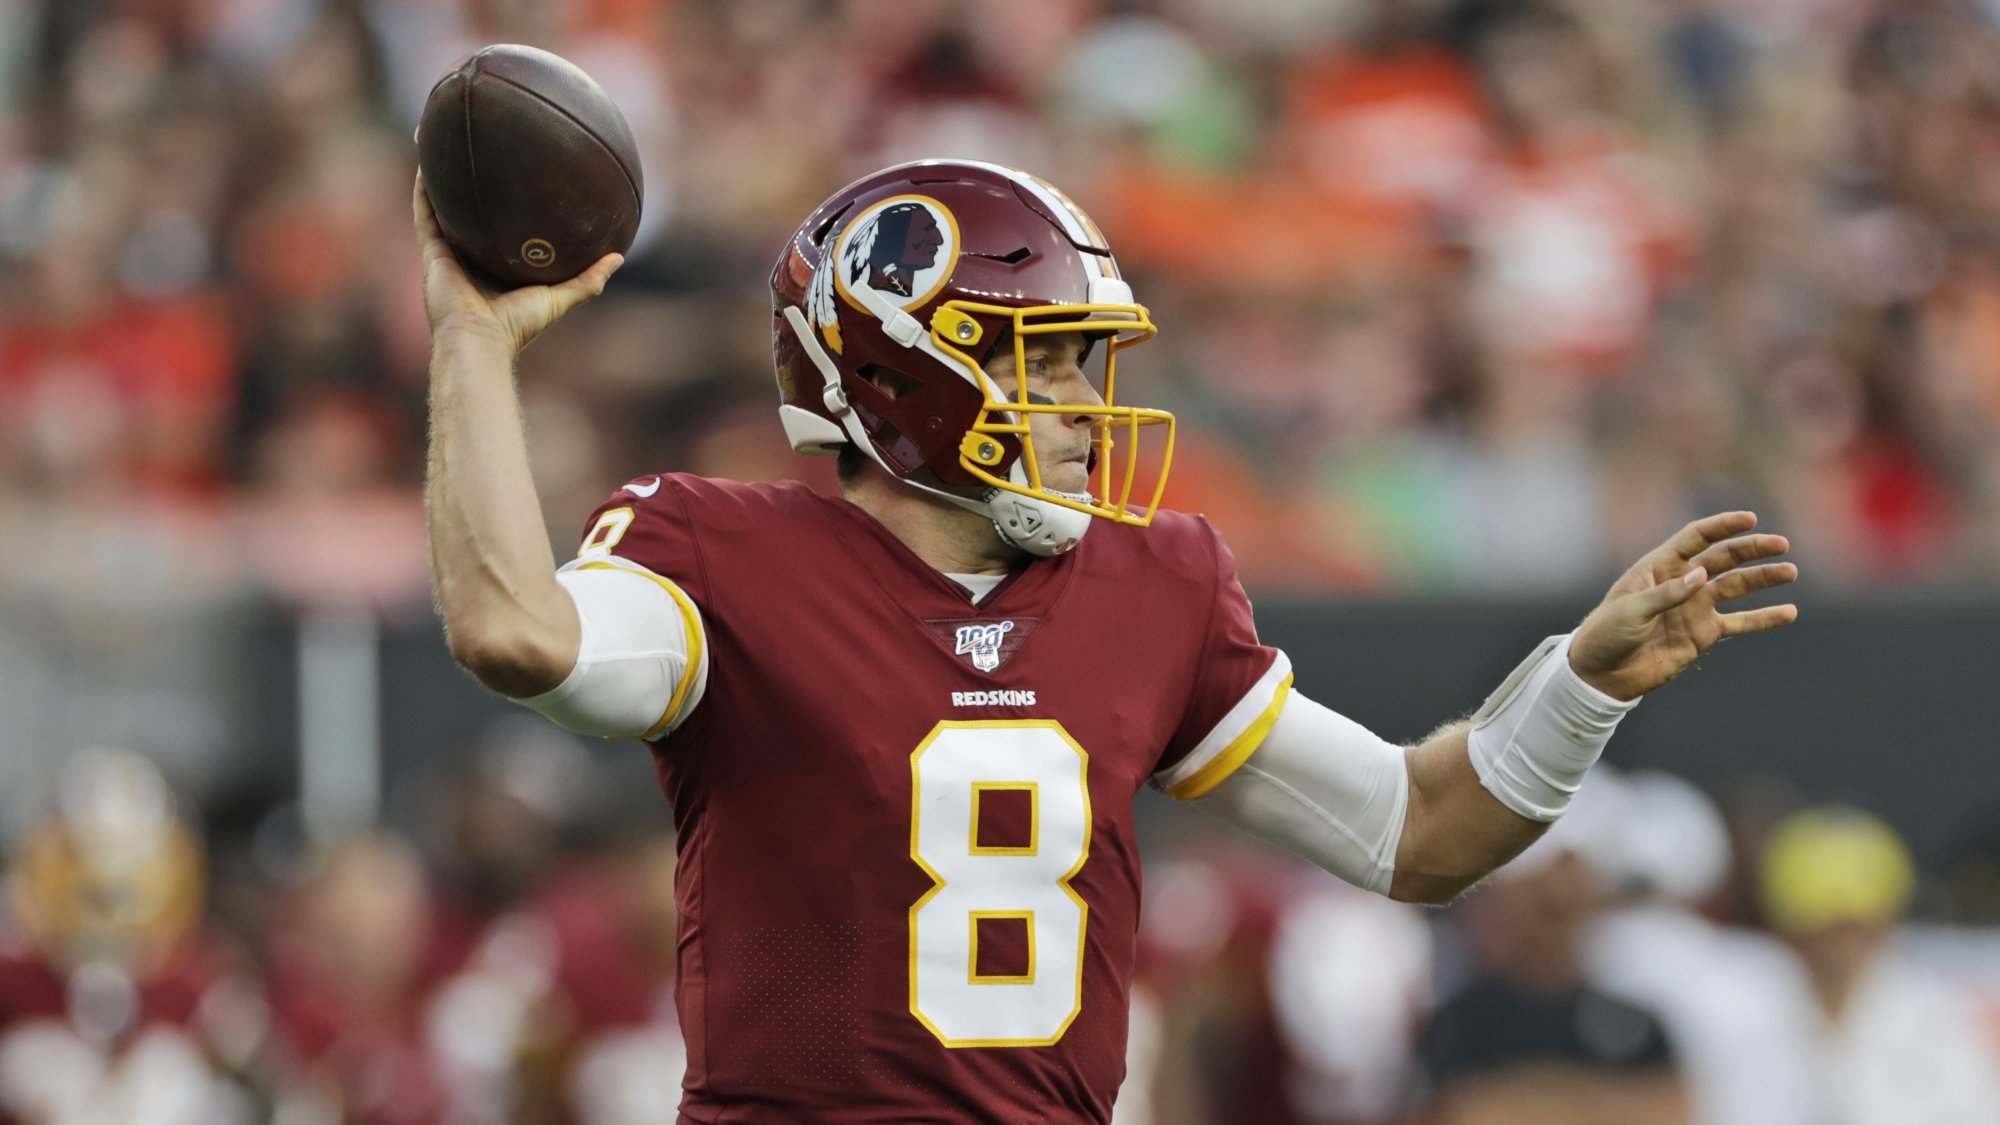 Case Keenum will be starting QB for Redskins' season opener